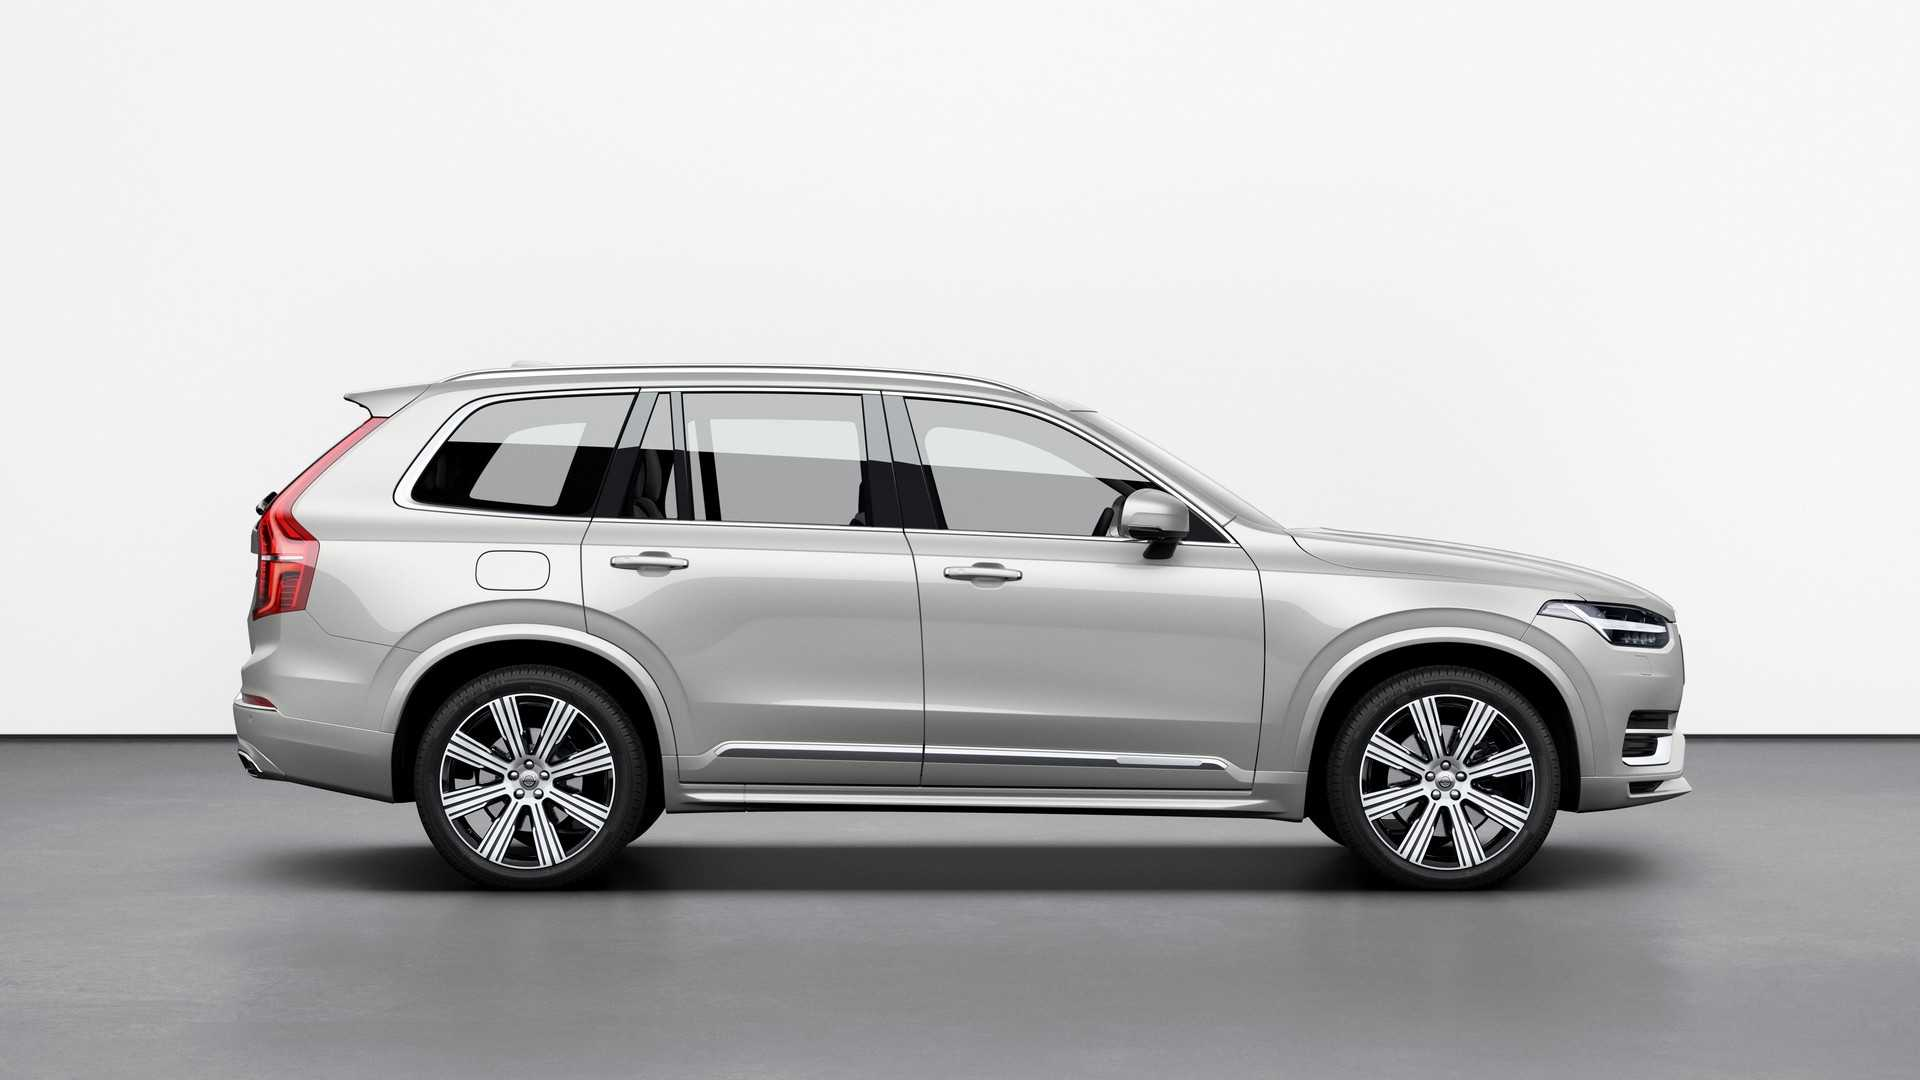 76 New Difference Between 2019 And 2020 Volvo Xc90 Overview by Difference Between 2019 And 2020 Volvo Xc90